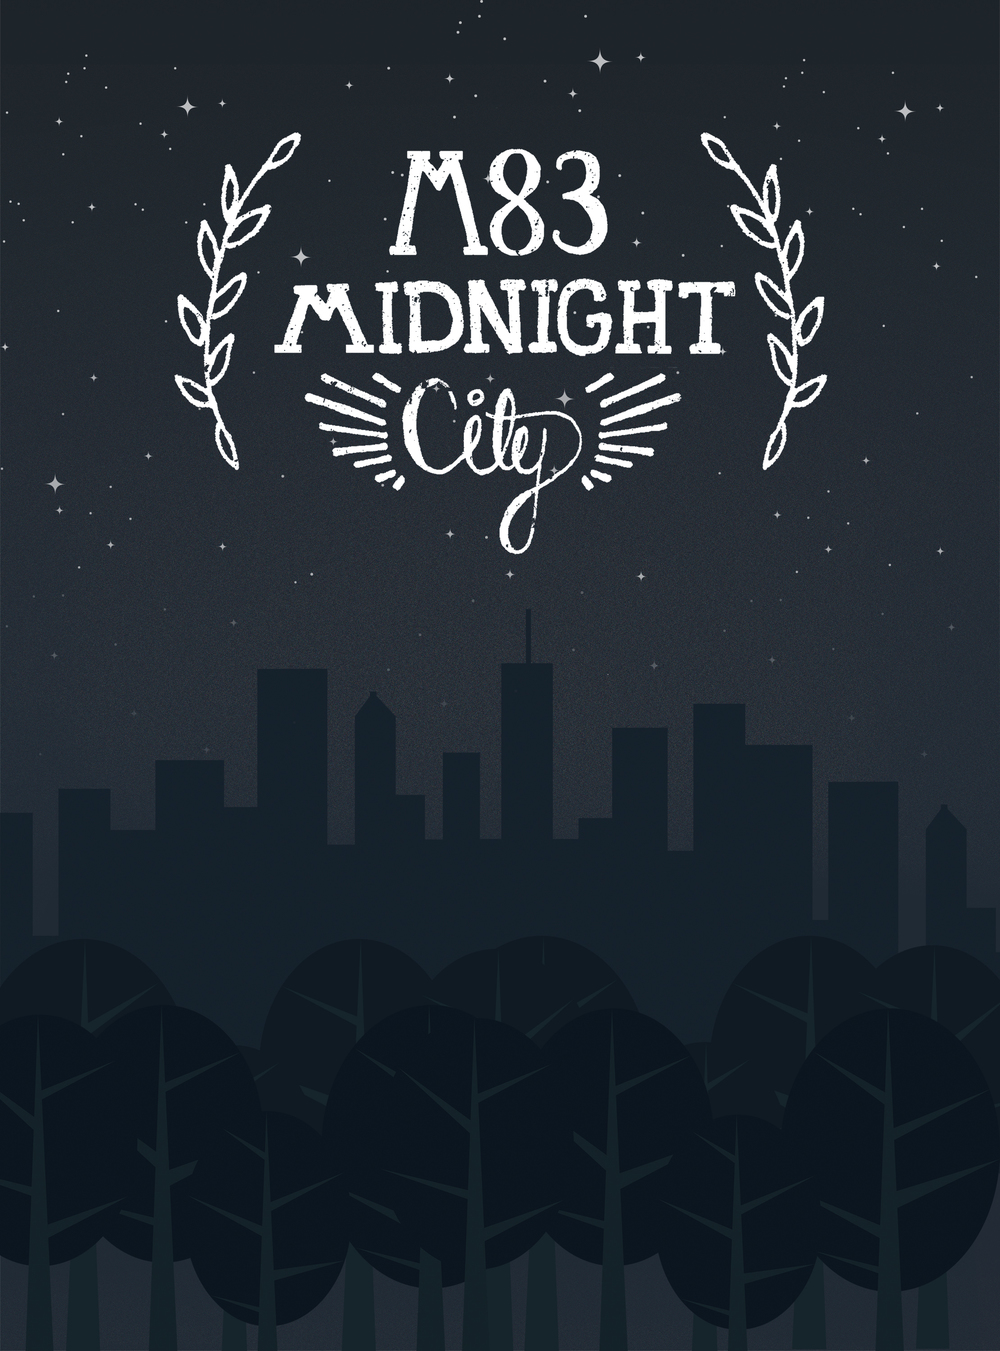 M83 midnight city original